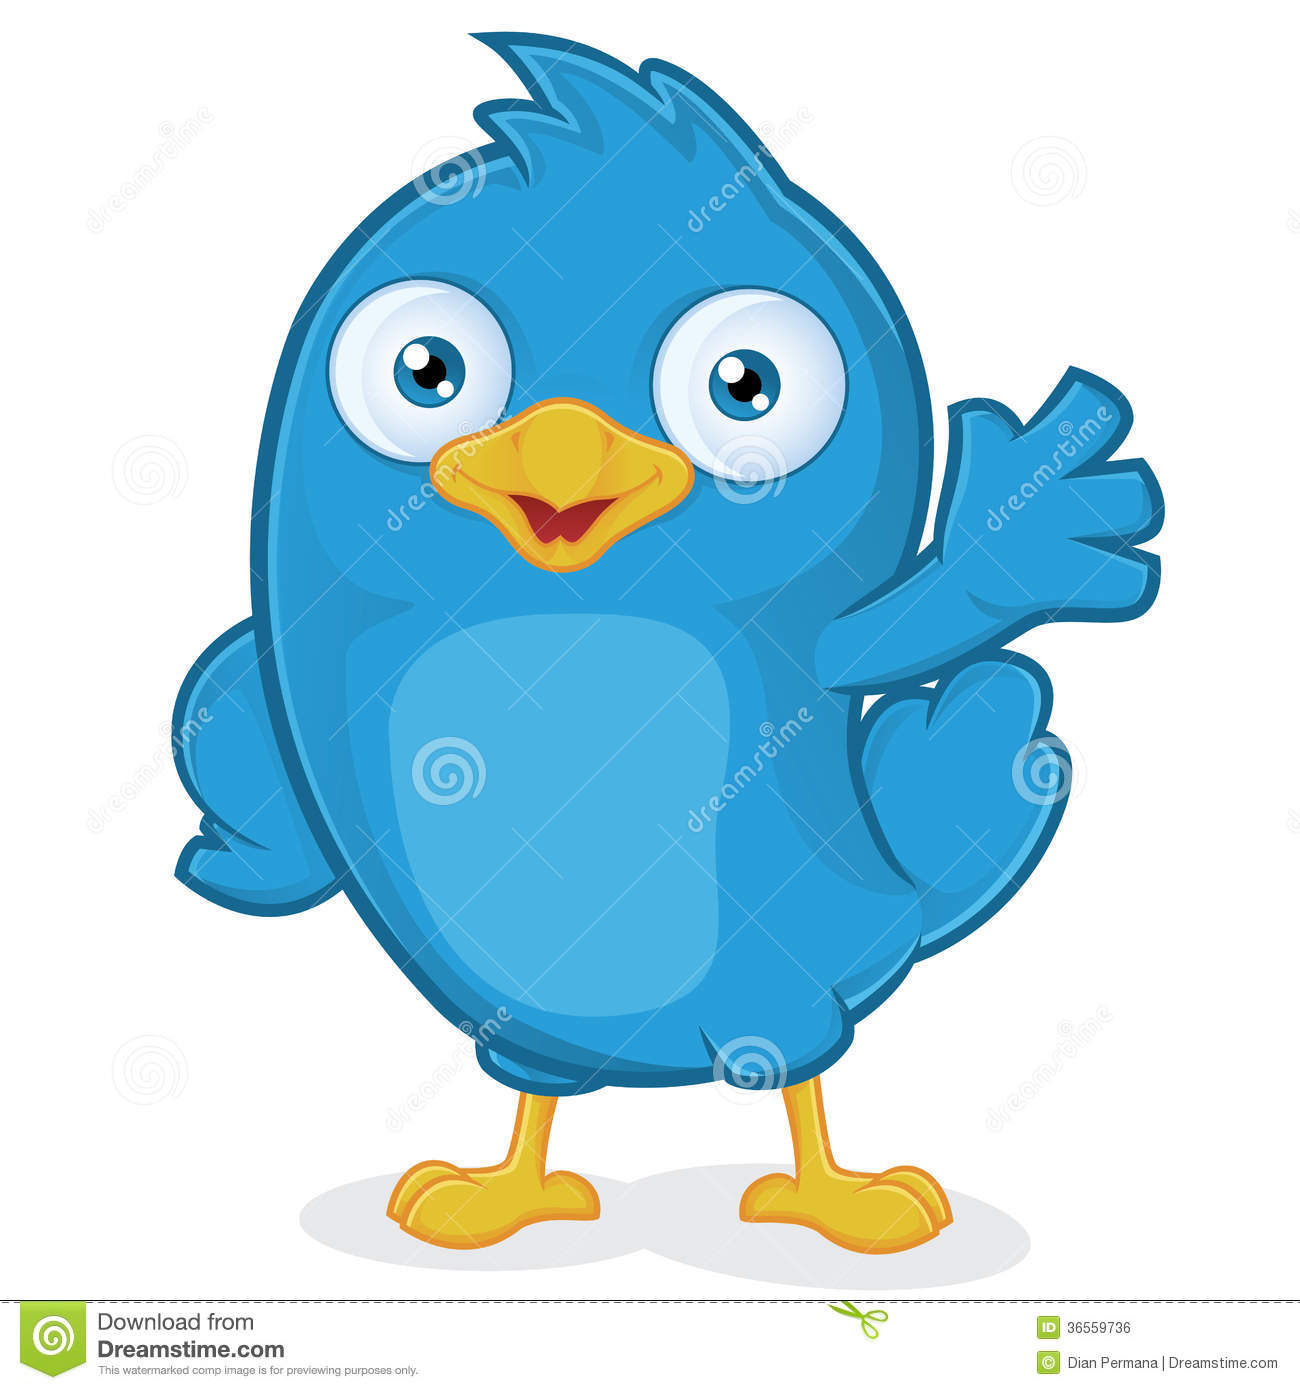 Cartoon blue bird on branch blue bird waving royalty free